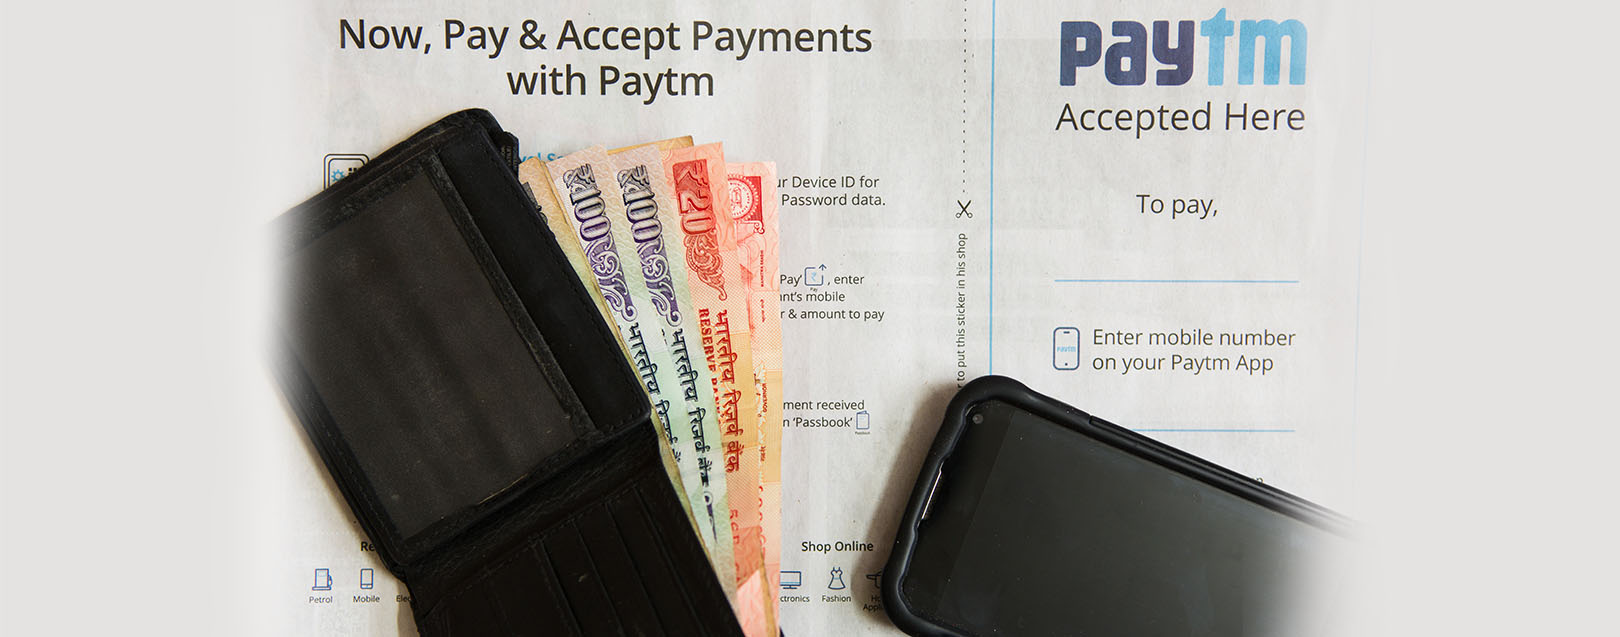 Digitisation ensures that people pay taxes: Paytm Chief